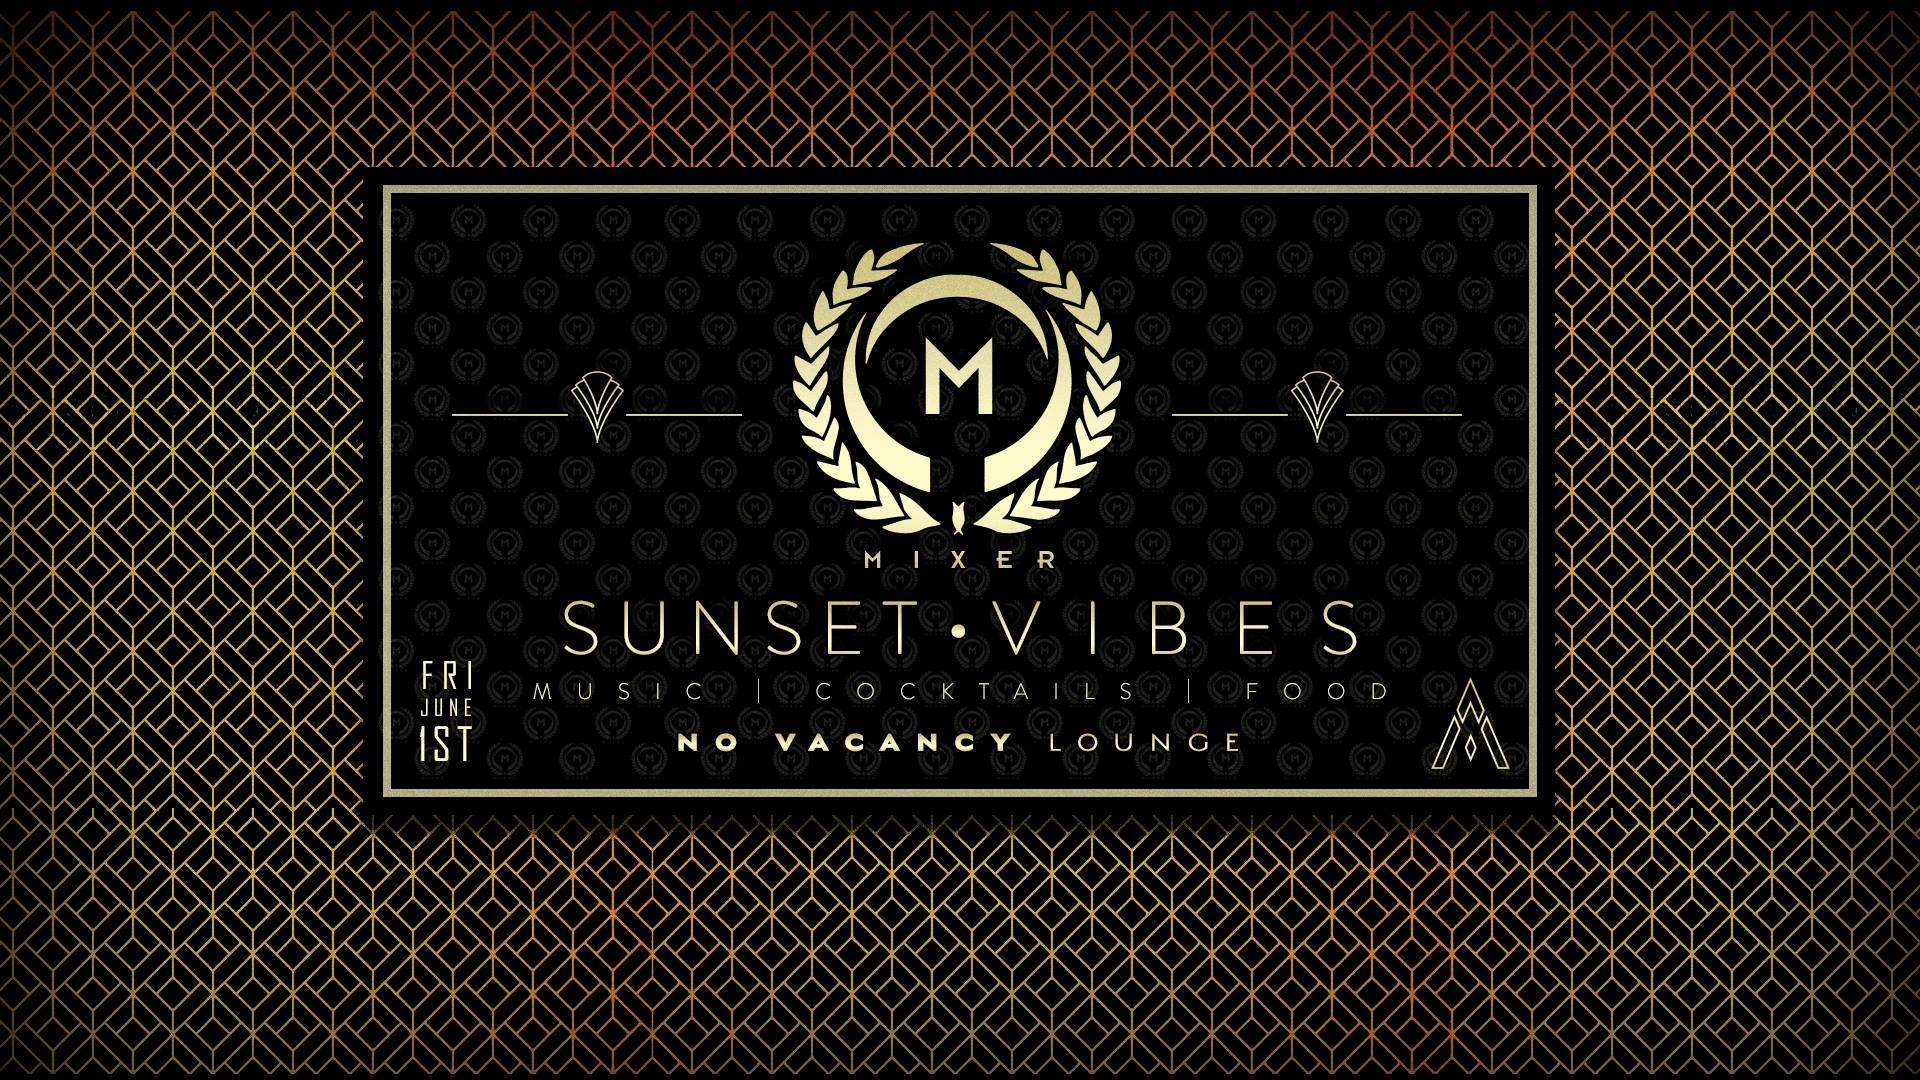 2e07f117eb3 Sunset Vibes - Mixer Happy Hour   No Vacancy Lounge